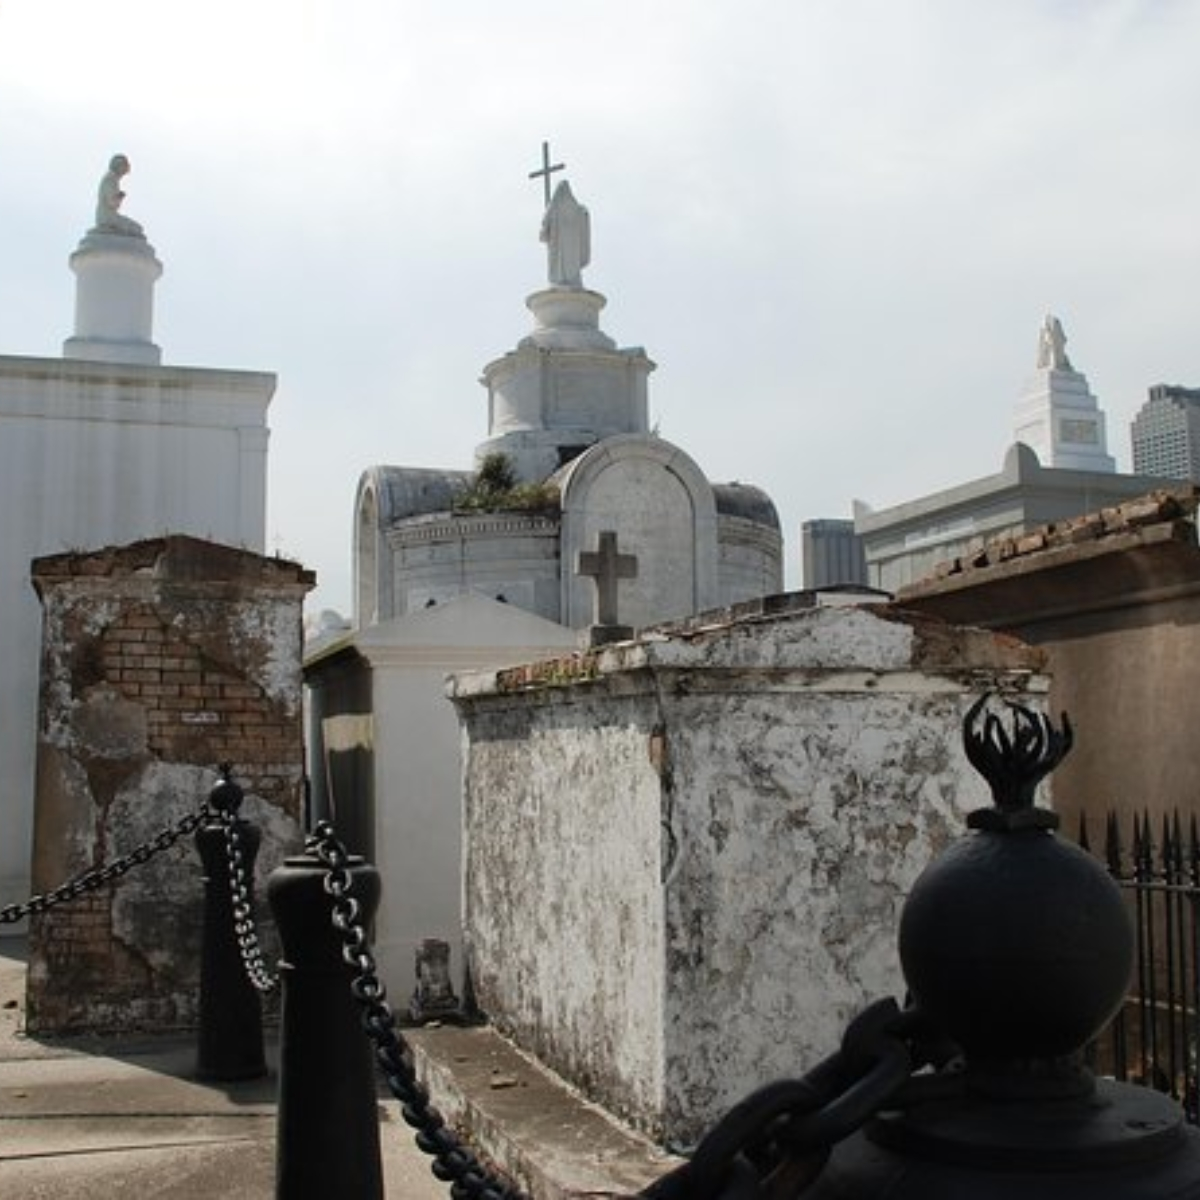 New Orleans Cemetery and Voodoo Walking Tour Images